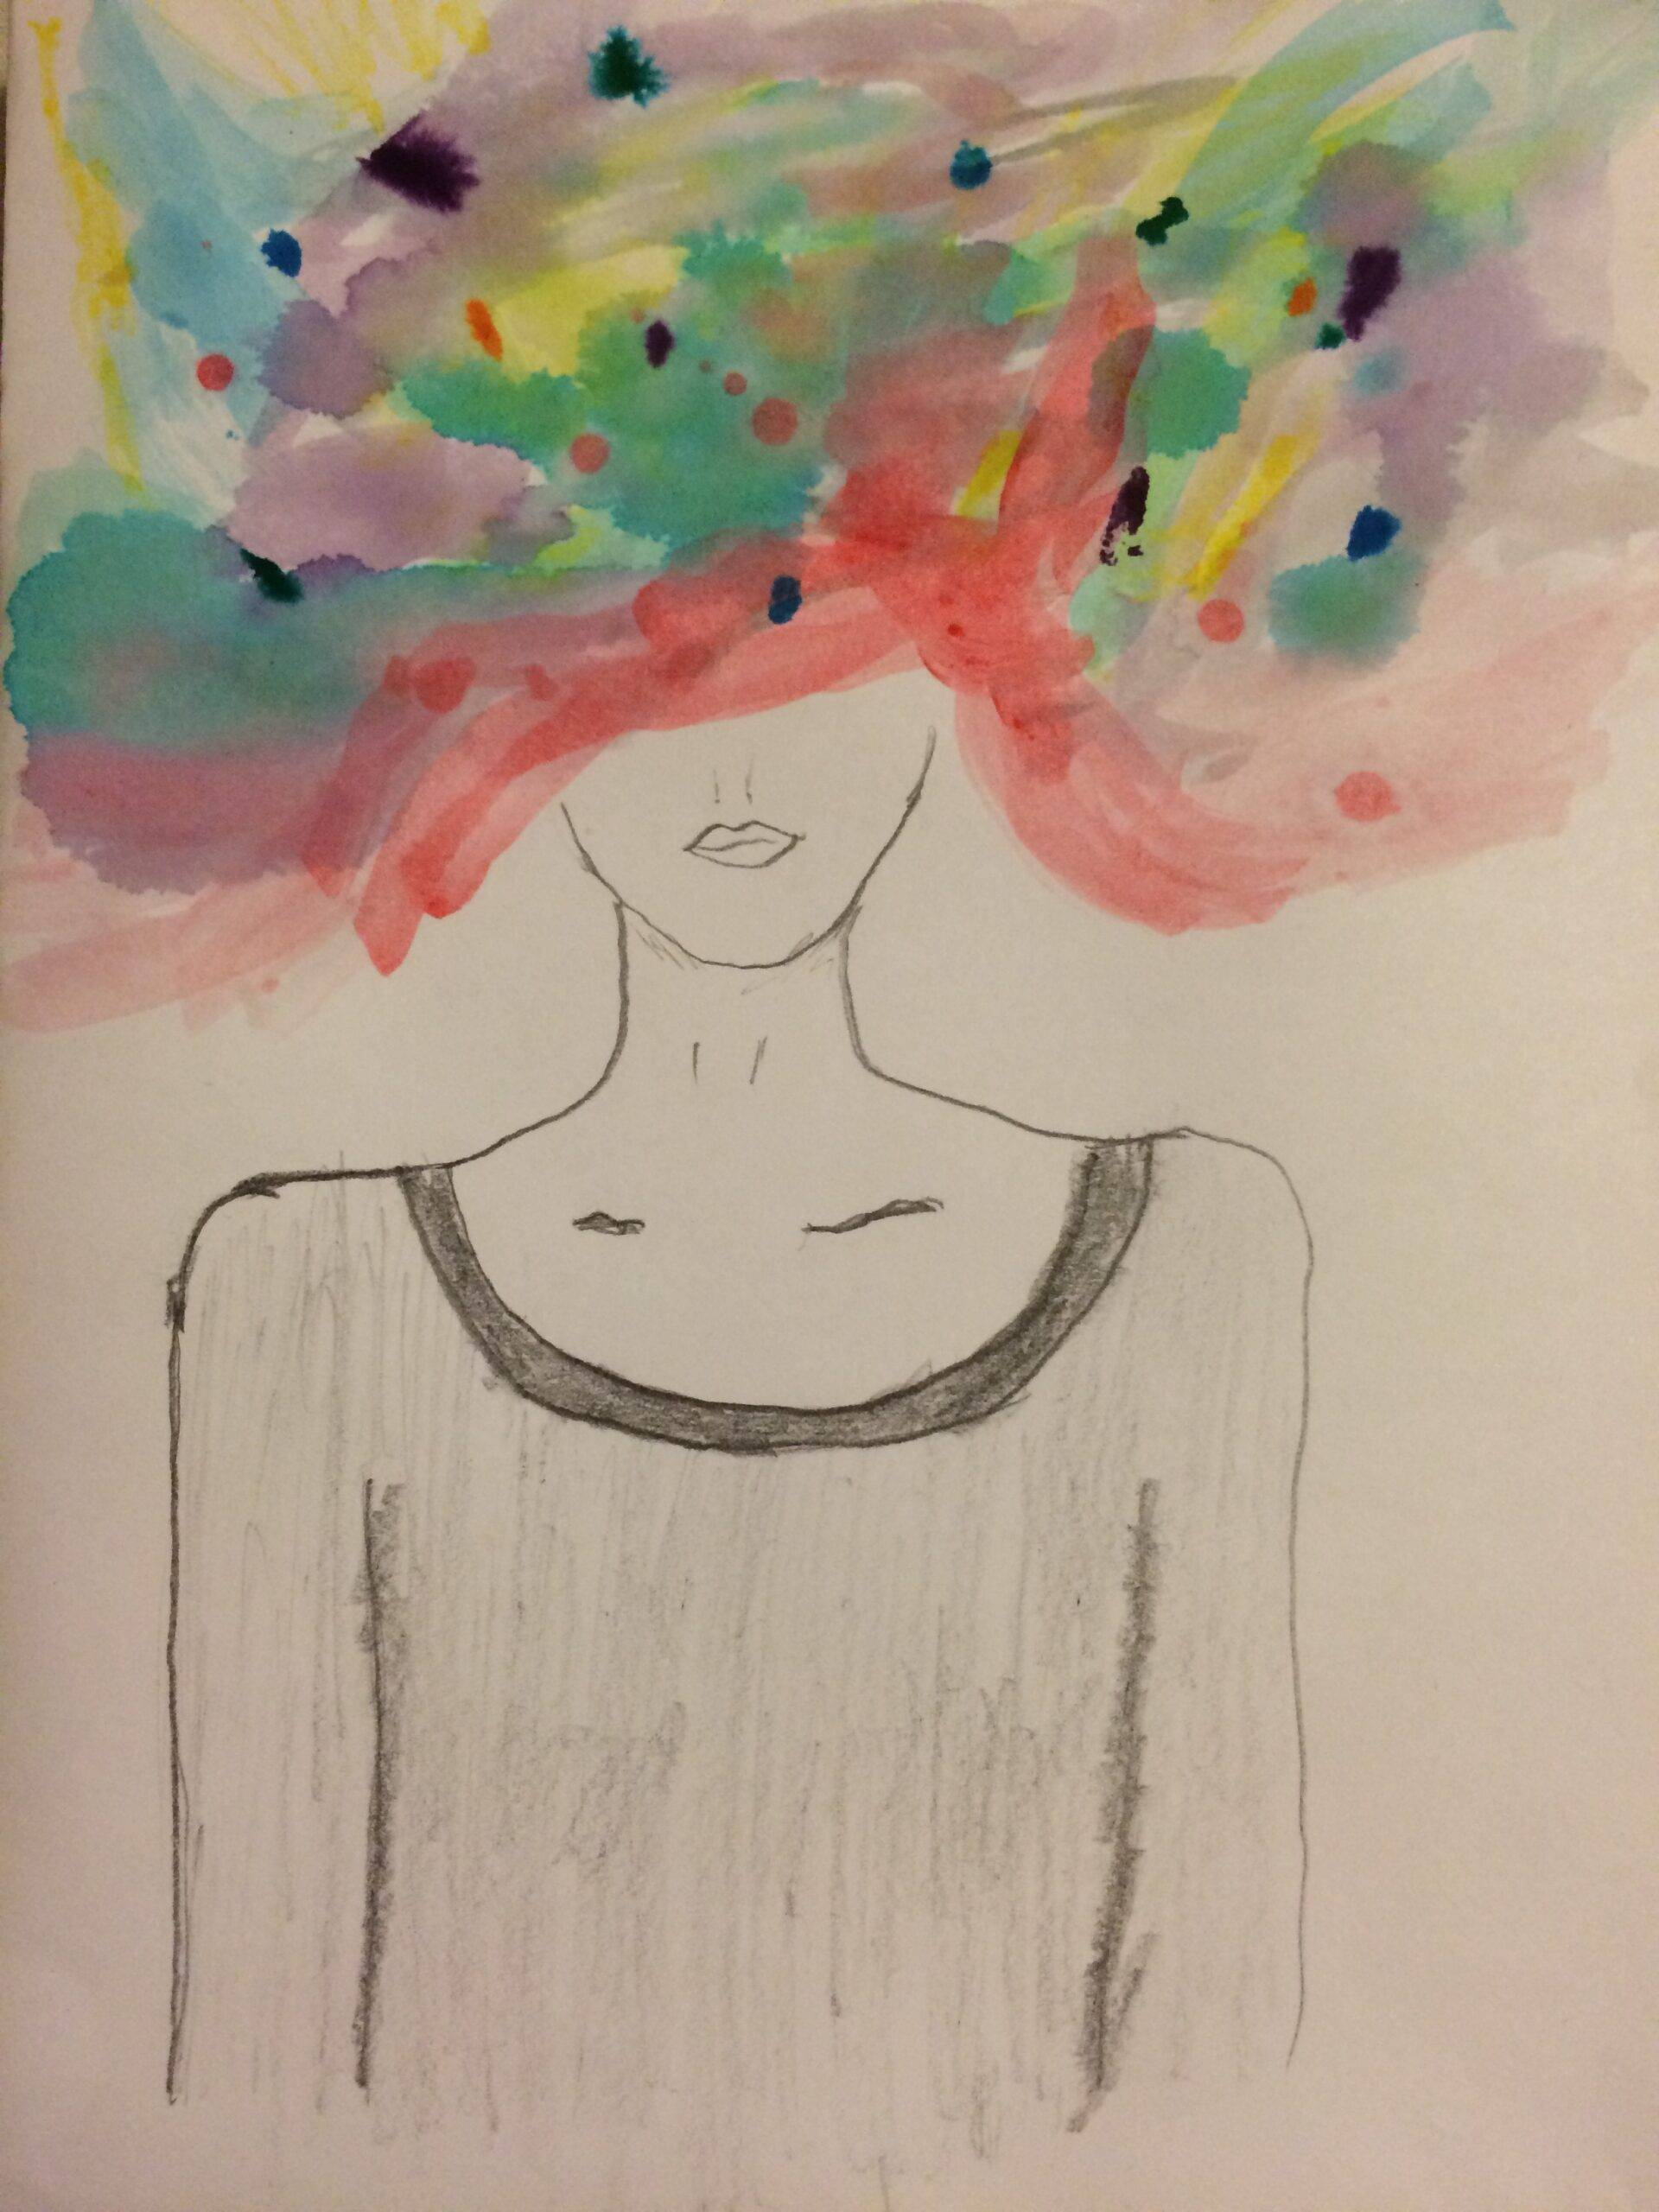 Chaos-a woman with swirling colors for a head.